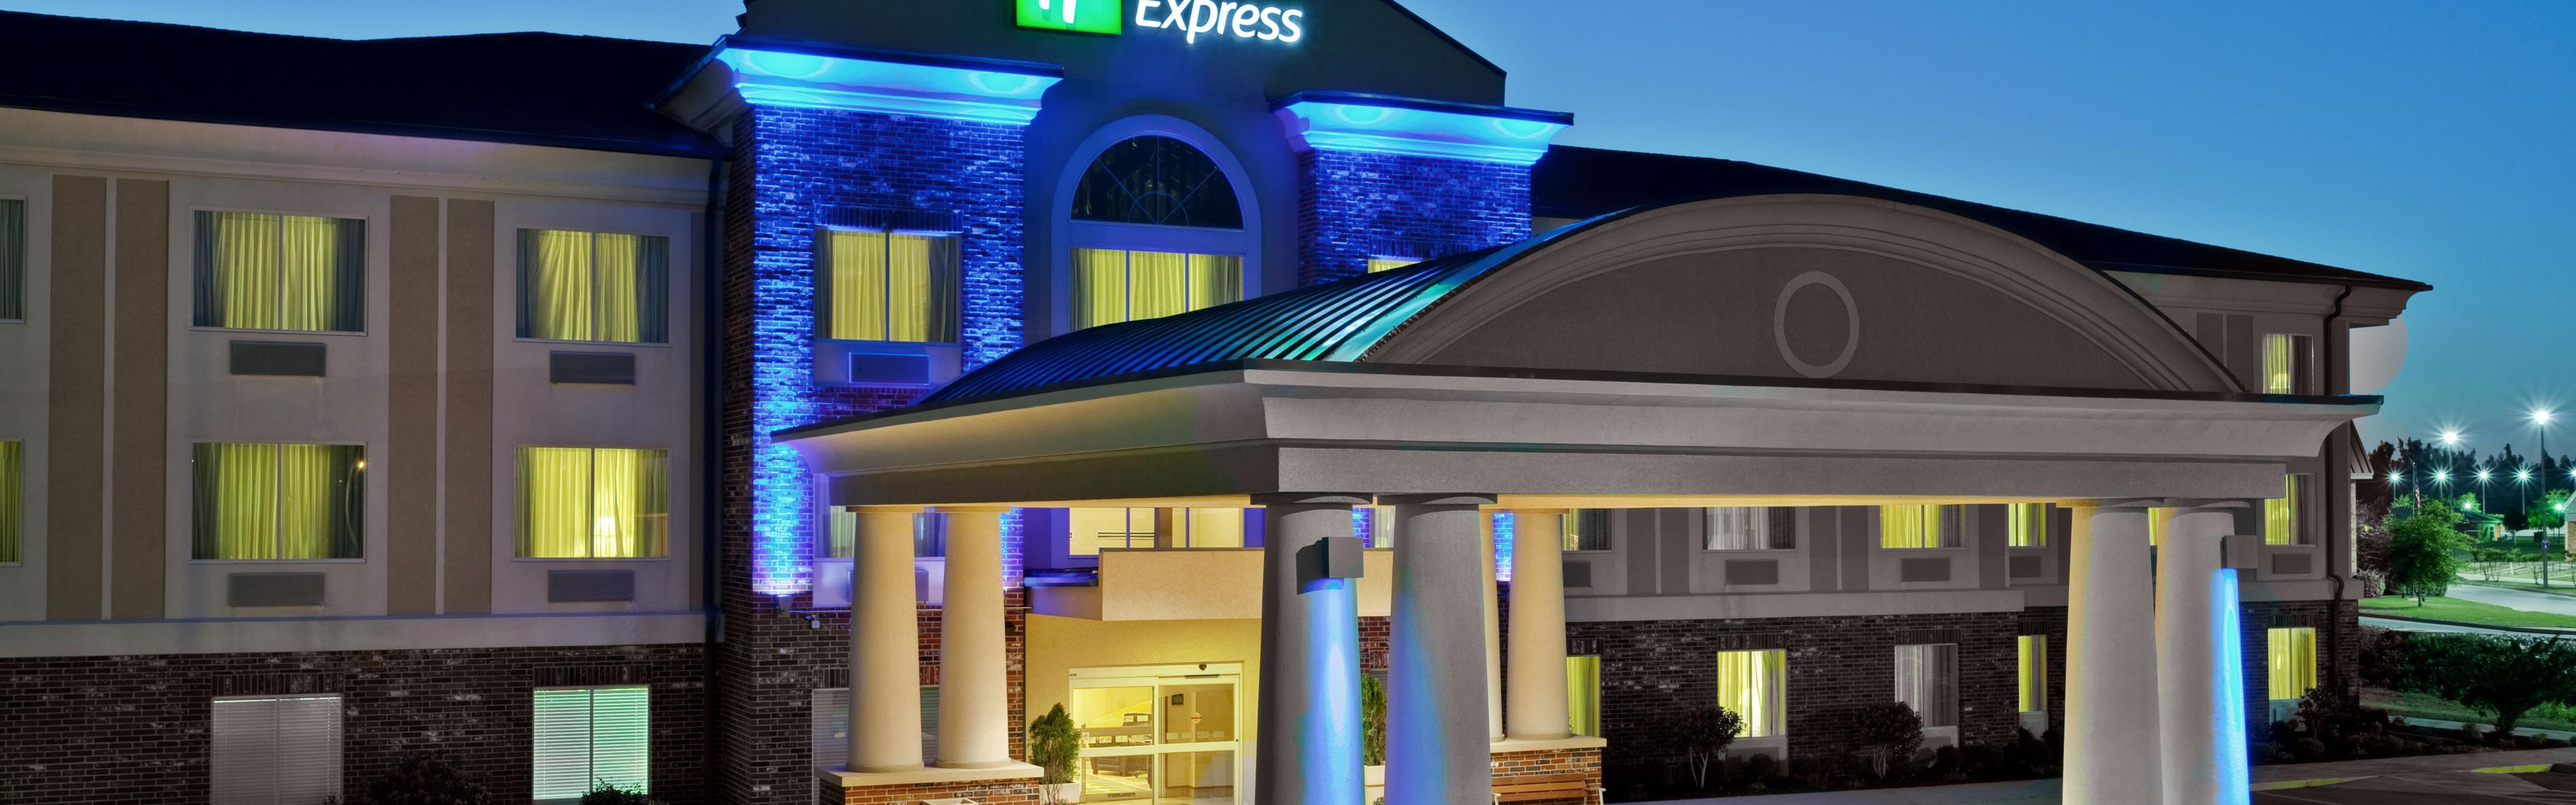 Holiday inn express coupon code